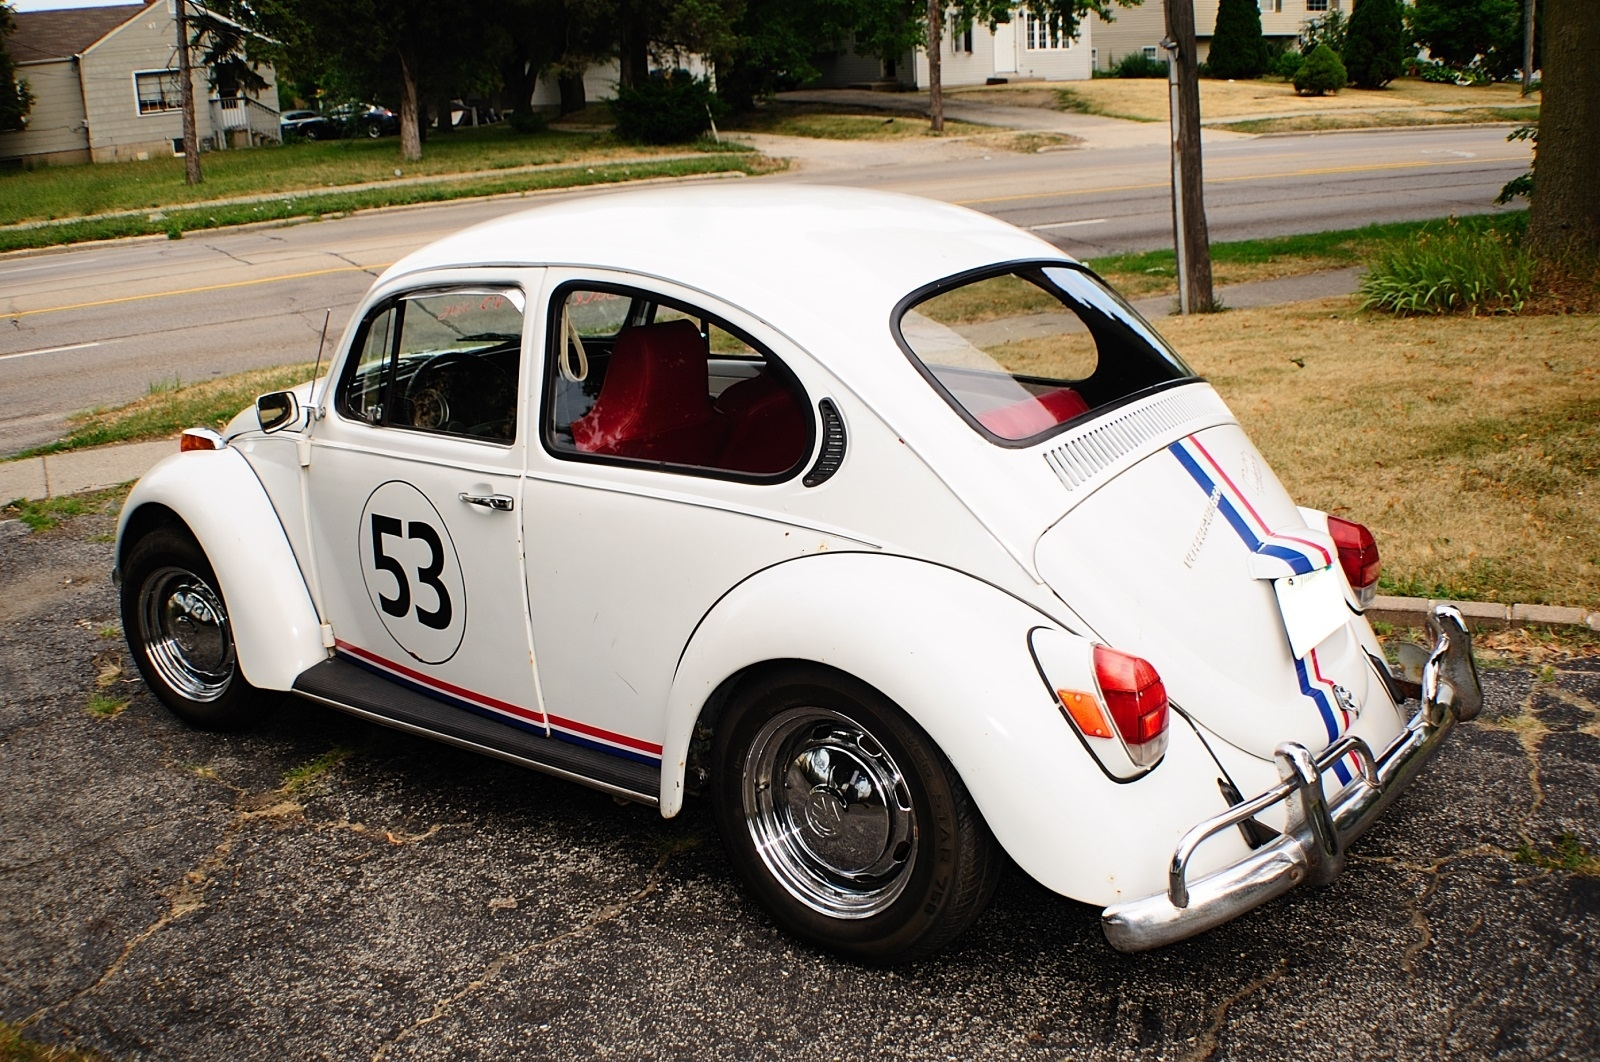 1971 Volkswagen Bug Beetle Herbie Replica Manual VW Sale Buffalo Grove Deerfield Fox Lake